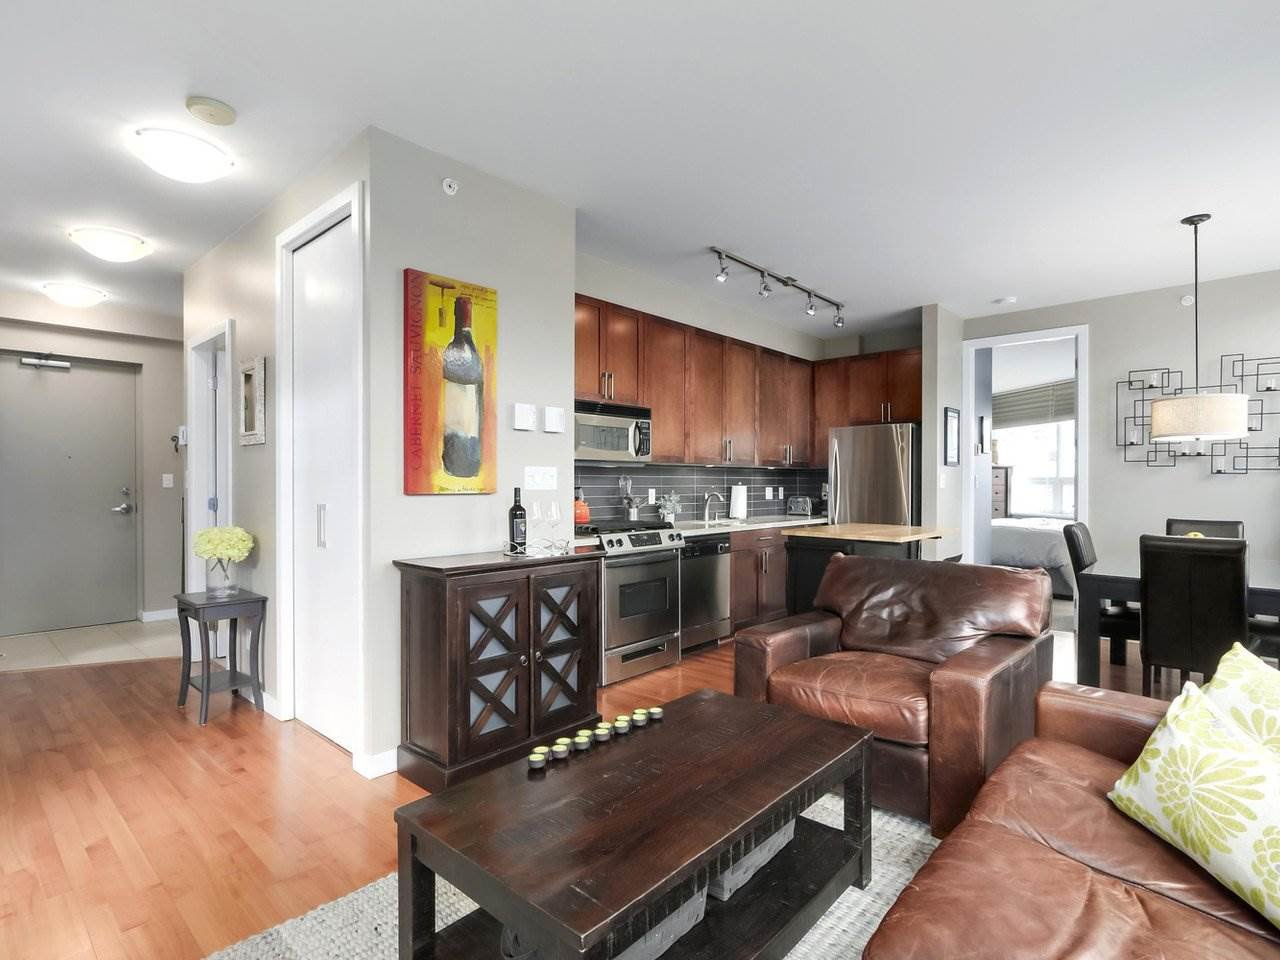 """Main Photo: 213 2055 YUKON Street in Vancouver: False Creek Condo for sale in """"MONTREAUX"""" (Vancouver West)  : MLS®# R2406659"""